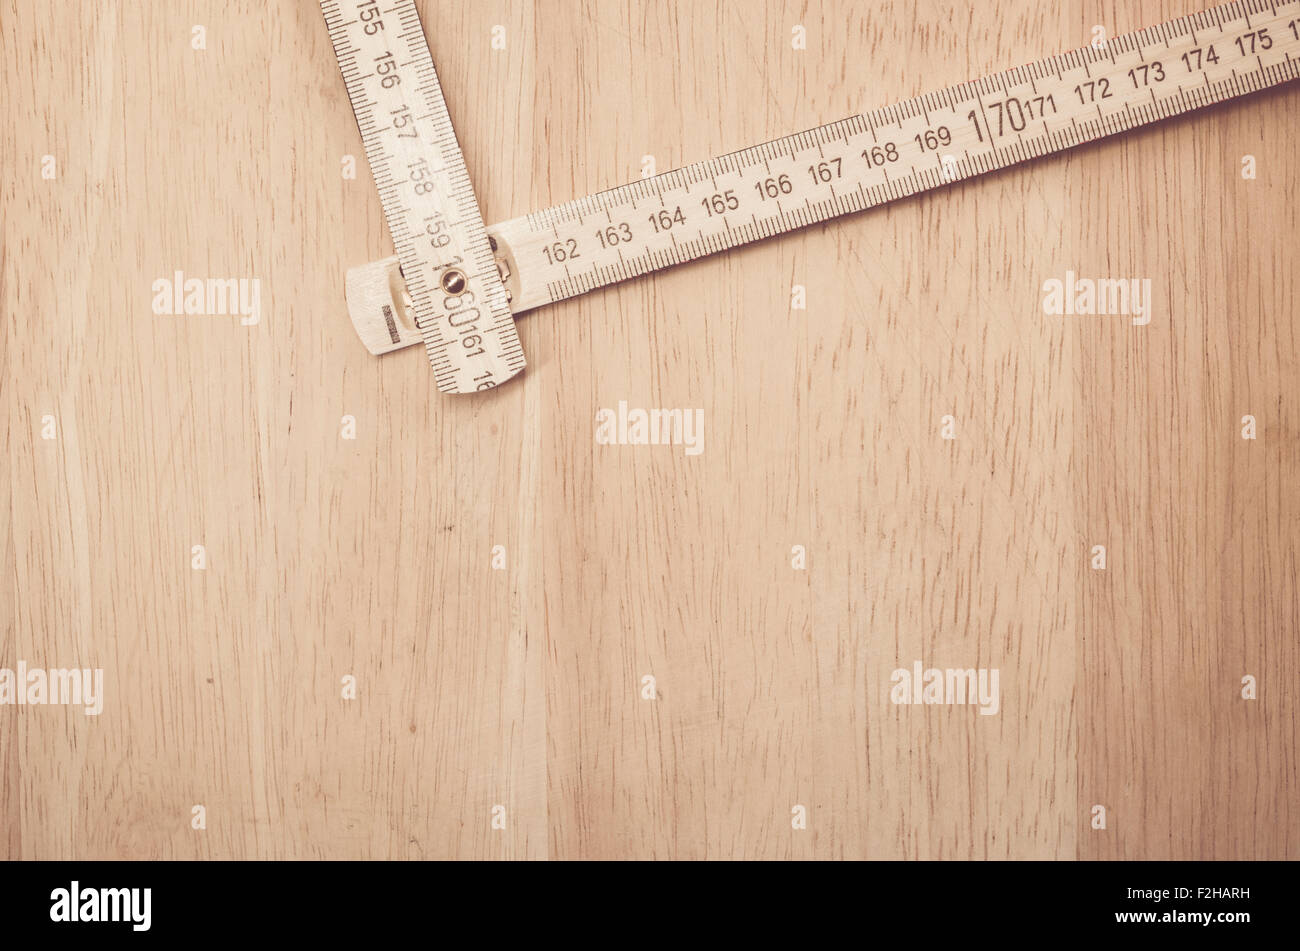 open wood yardstick on a natural wood surface - tools background with copy space - Stock Image